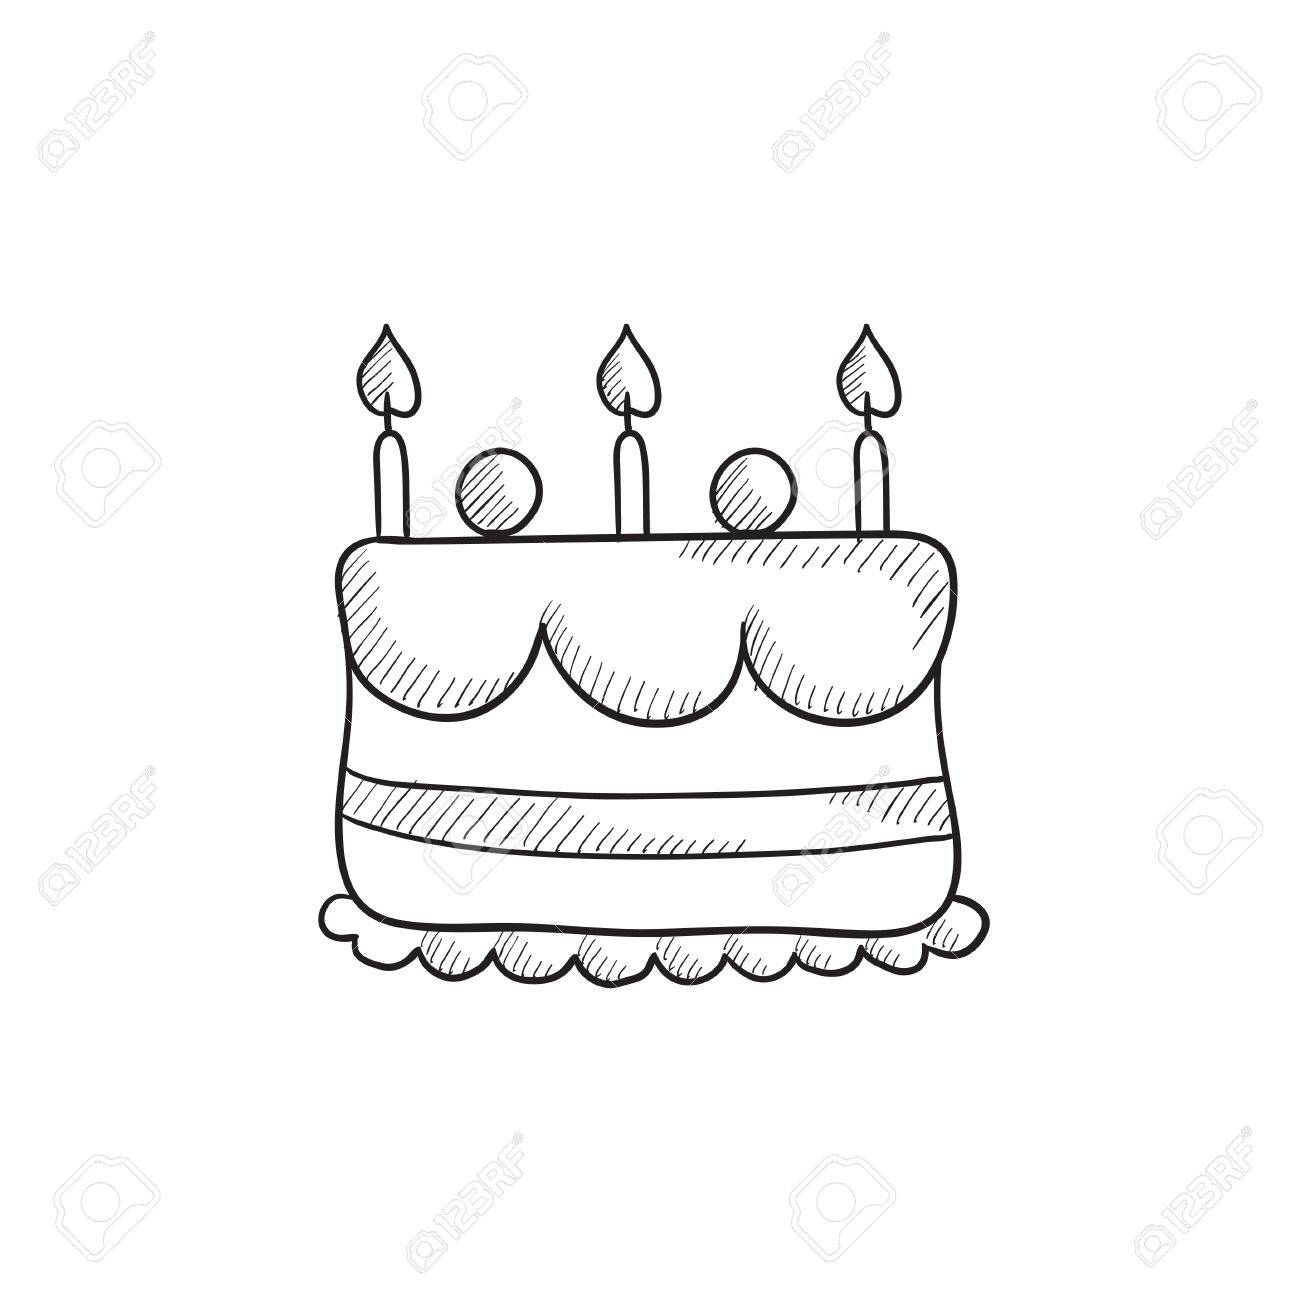 Birthday cake drawing vector images diagram writing sample ideas birthday cake with candles vector sketch icon isolated on birthday cake with candles vector sketch icon sciox Image collections